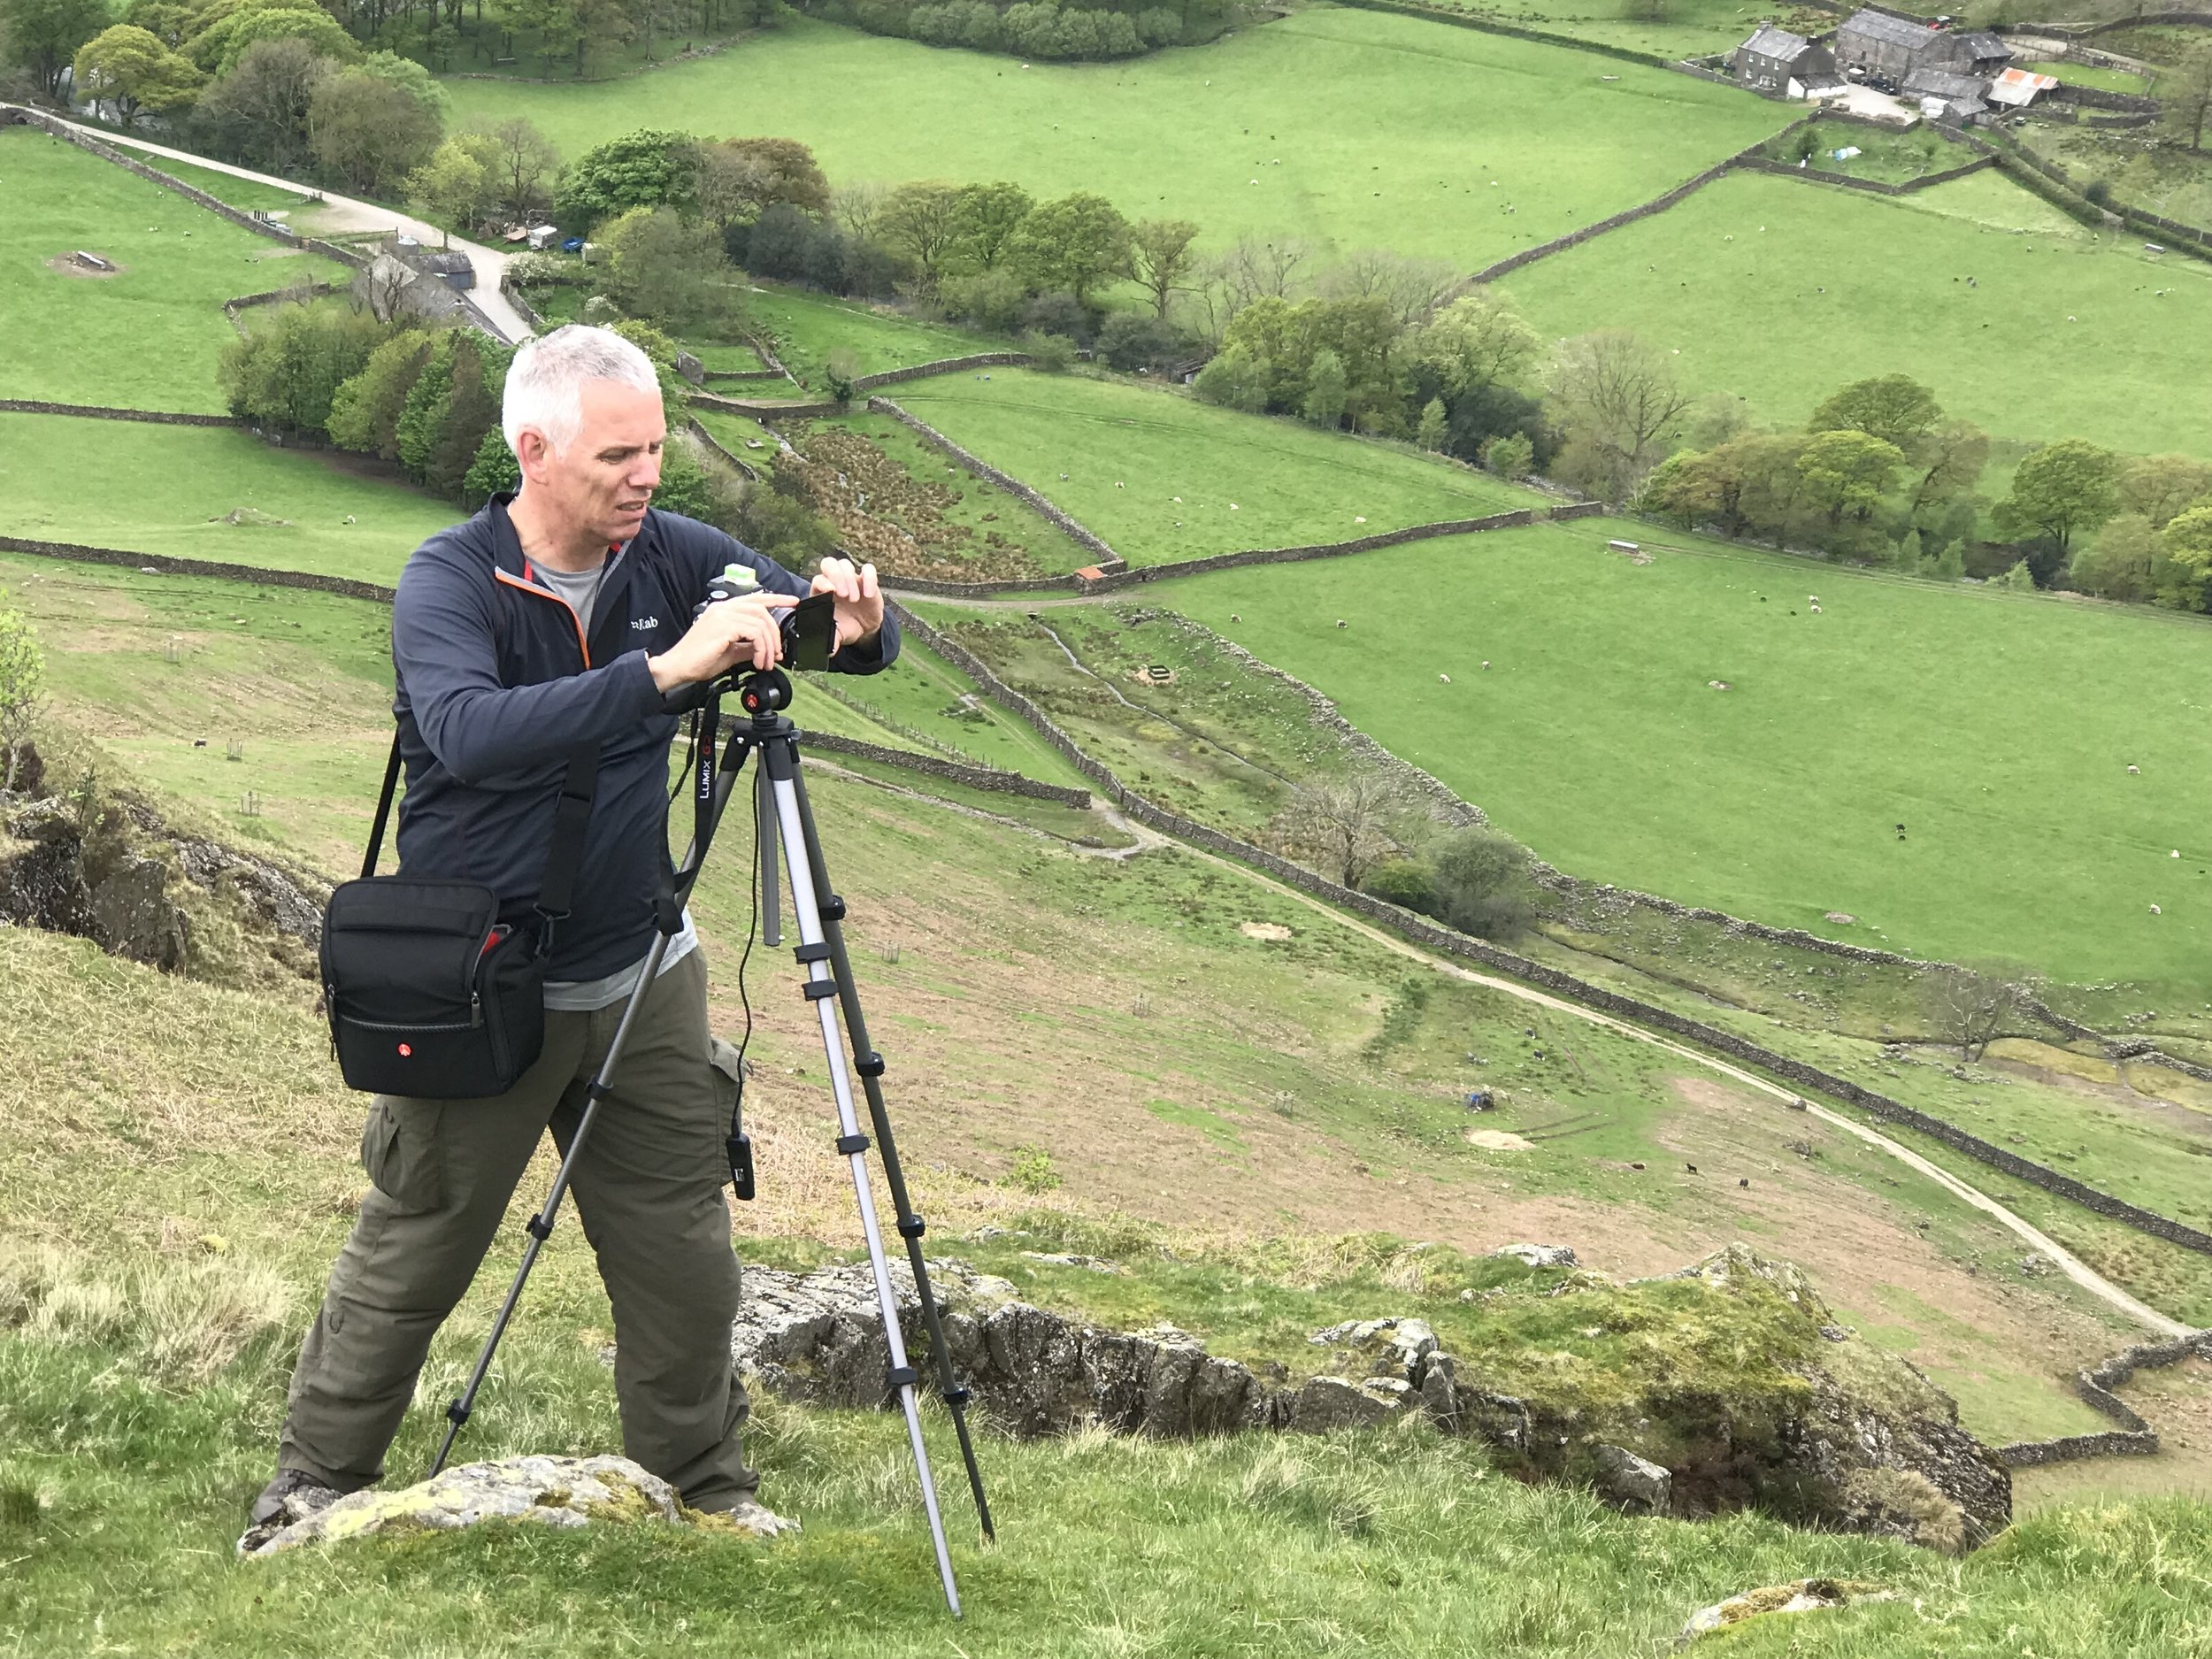 Bob above the Esk valley